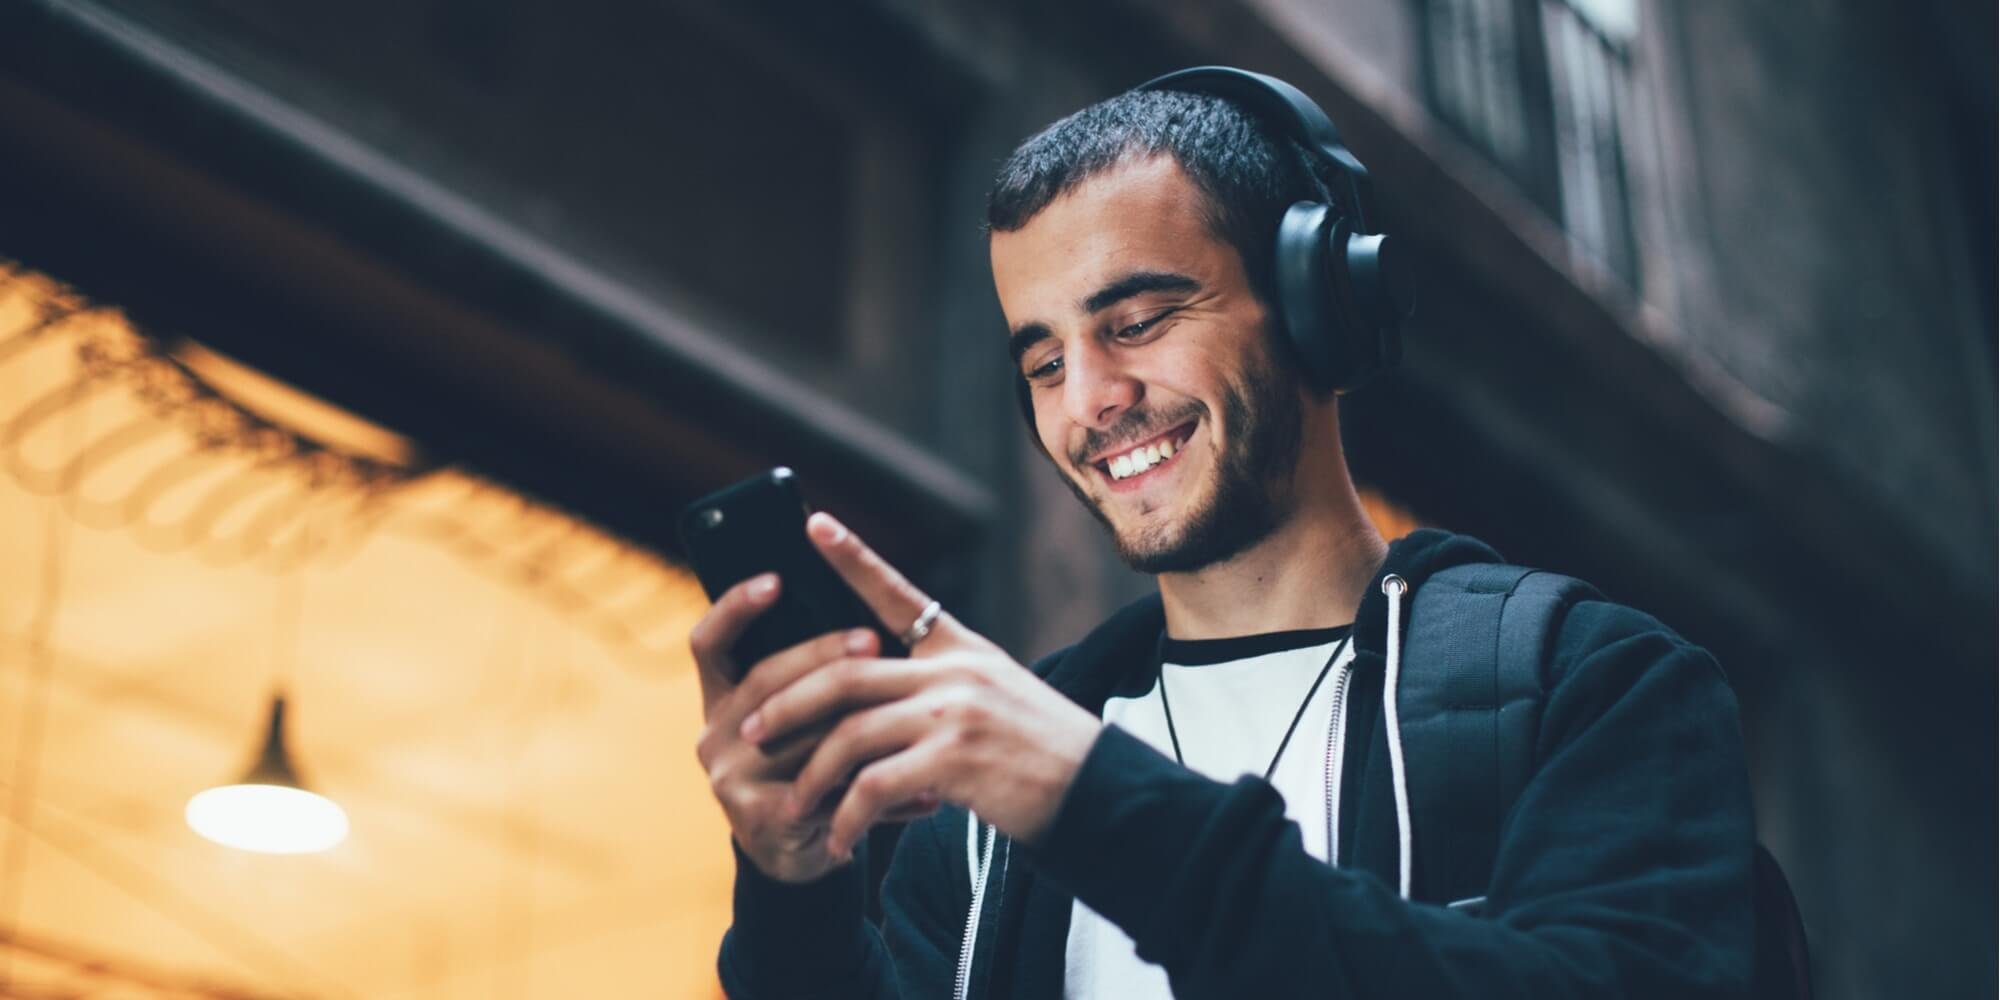 guy looking at phone while smiling